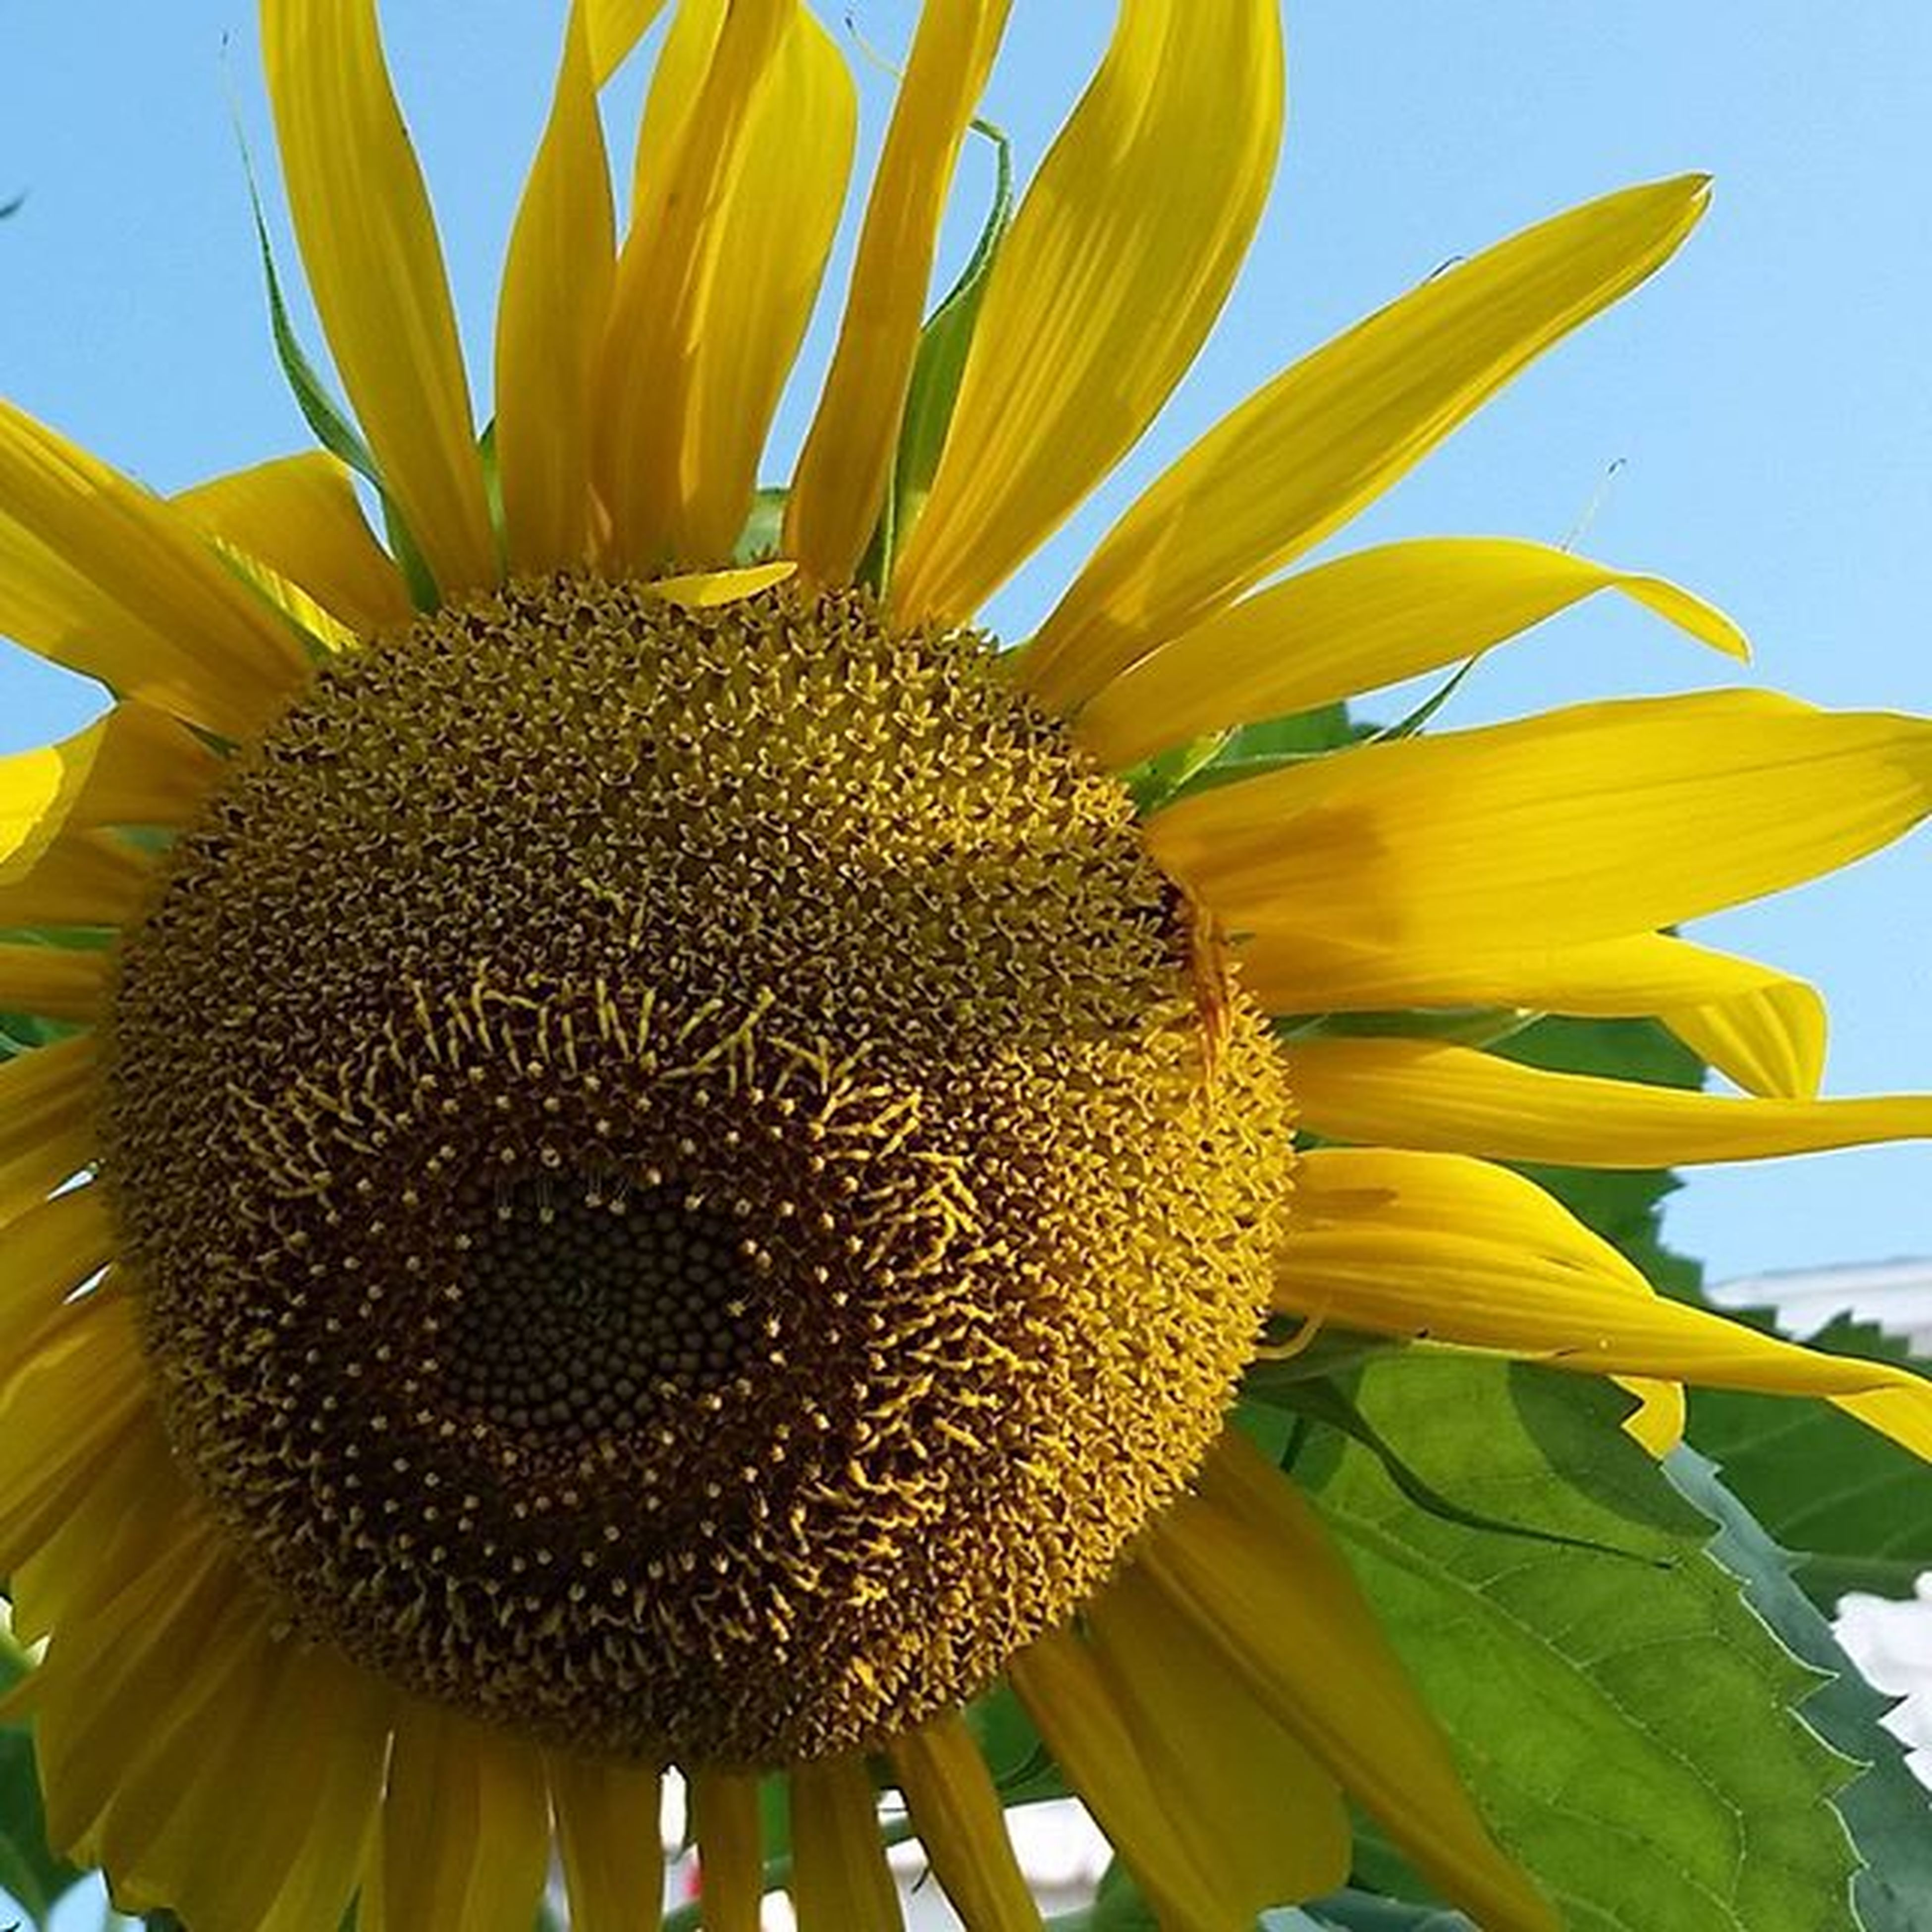 flower, sunflower, yellow, growth, freshness, flower head, fragility, petal, beauty in nature, pollen, nature, low angle view, close-up, blooming, plant, single flower, clear sky, sky, leaf, outdoors